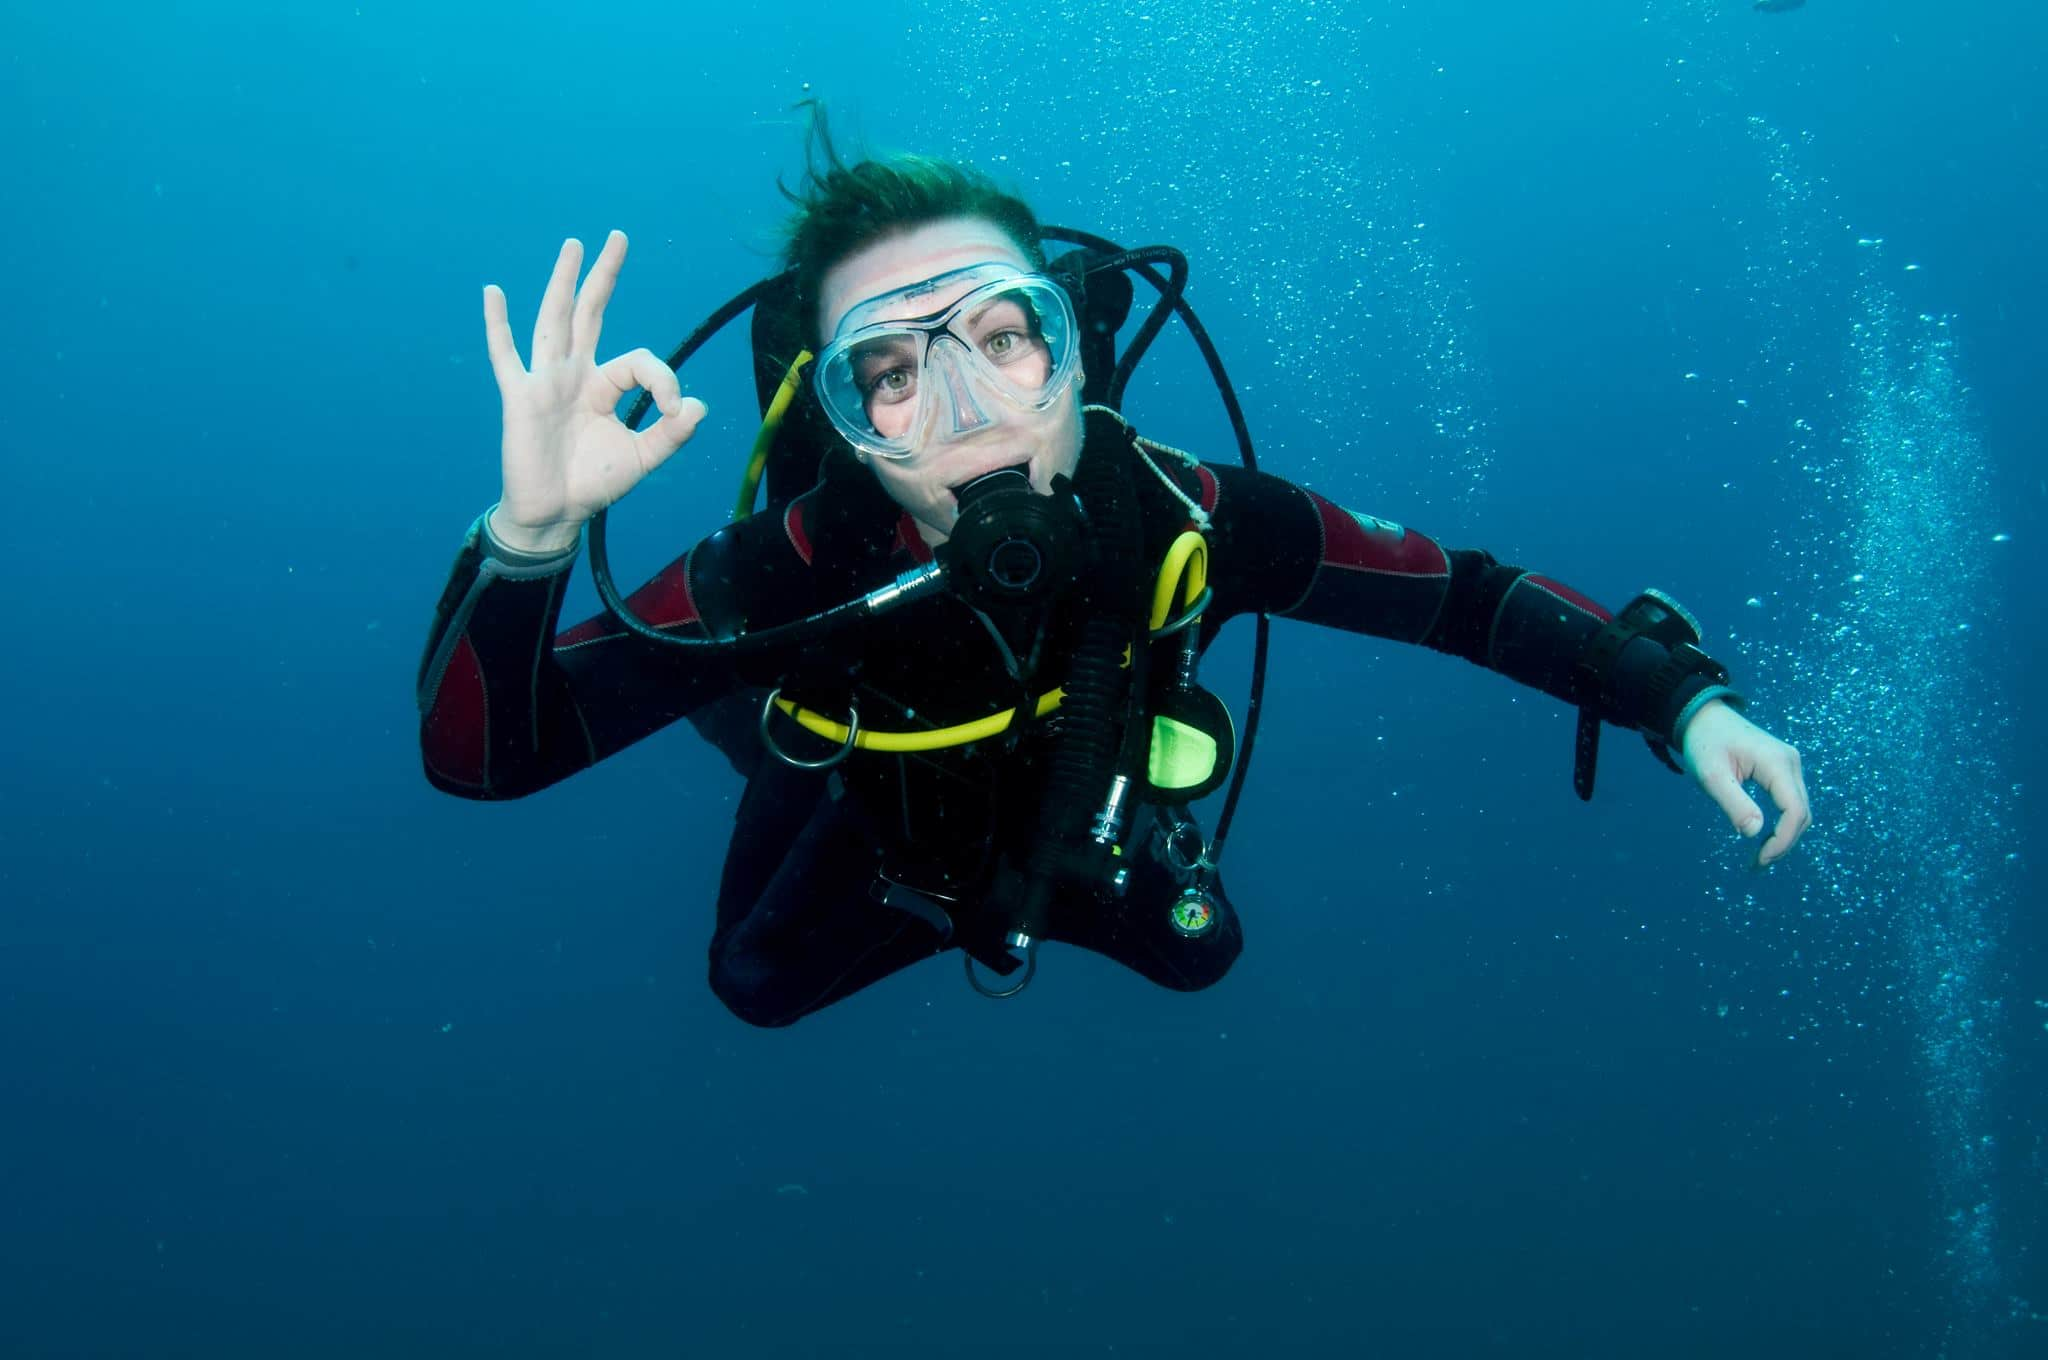 Researchers Studying Scuba Divers' Cardio Profiles